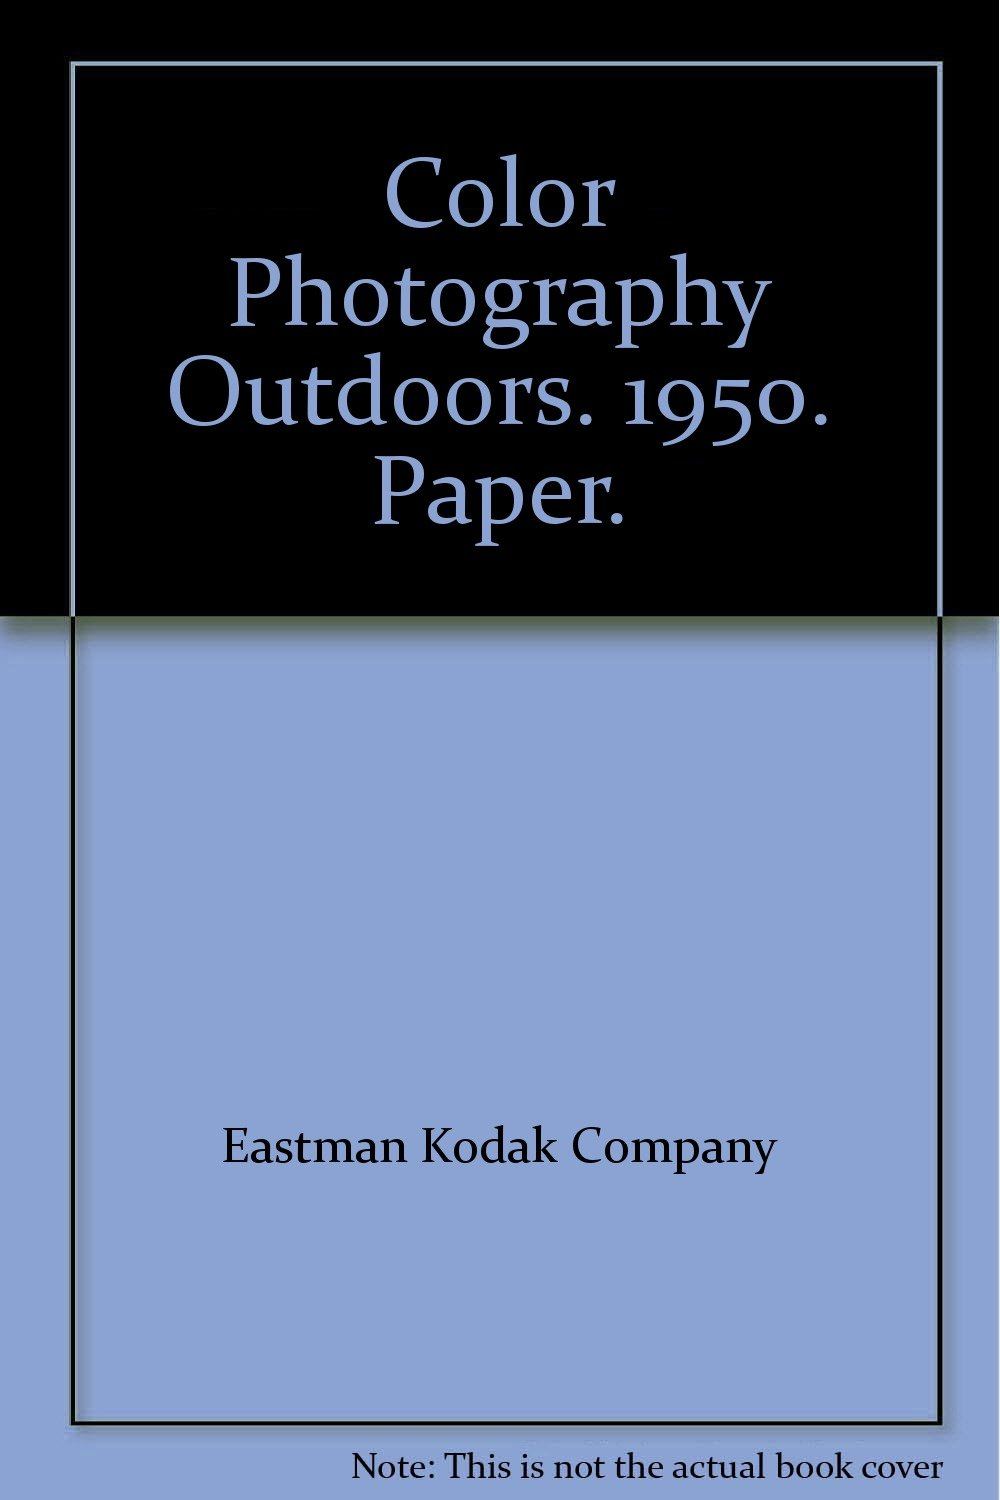 Color Photography Outdoors. 1950. Paper.